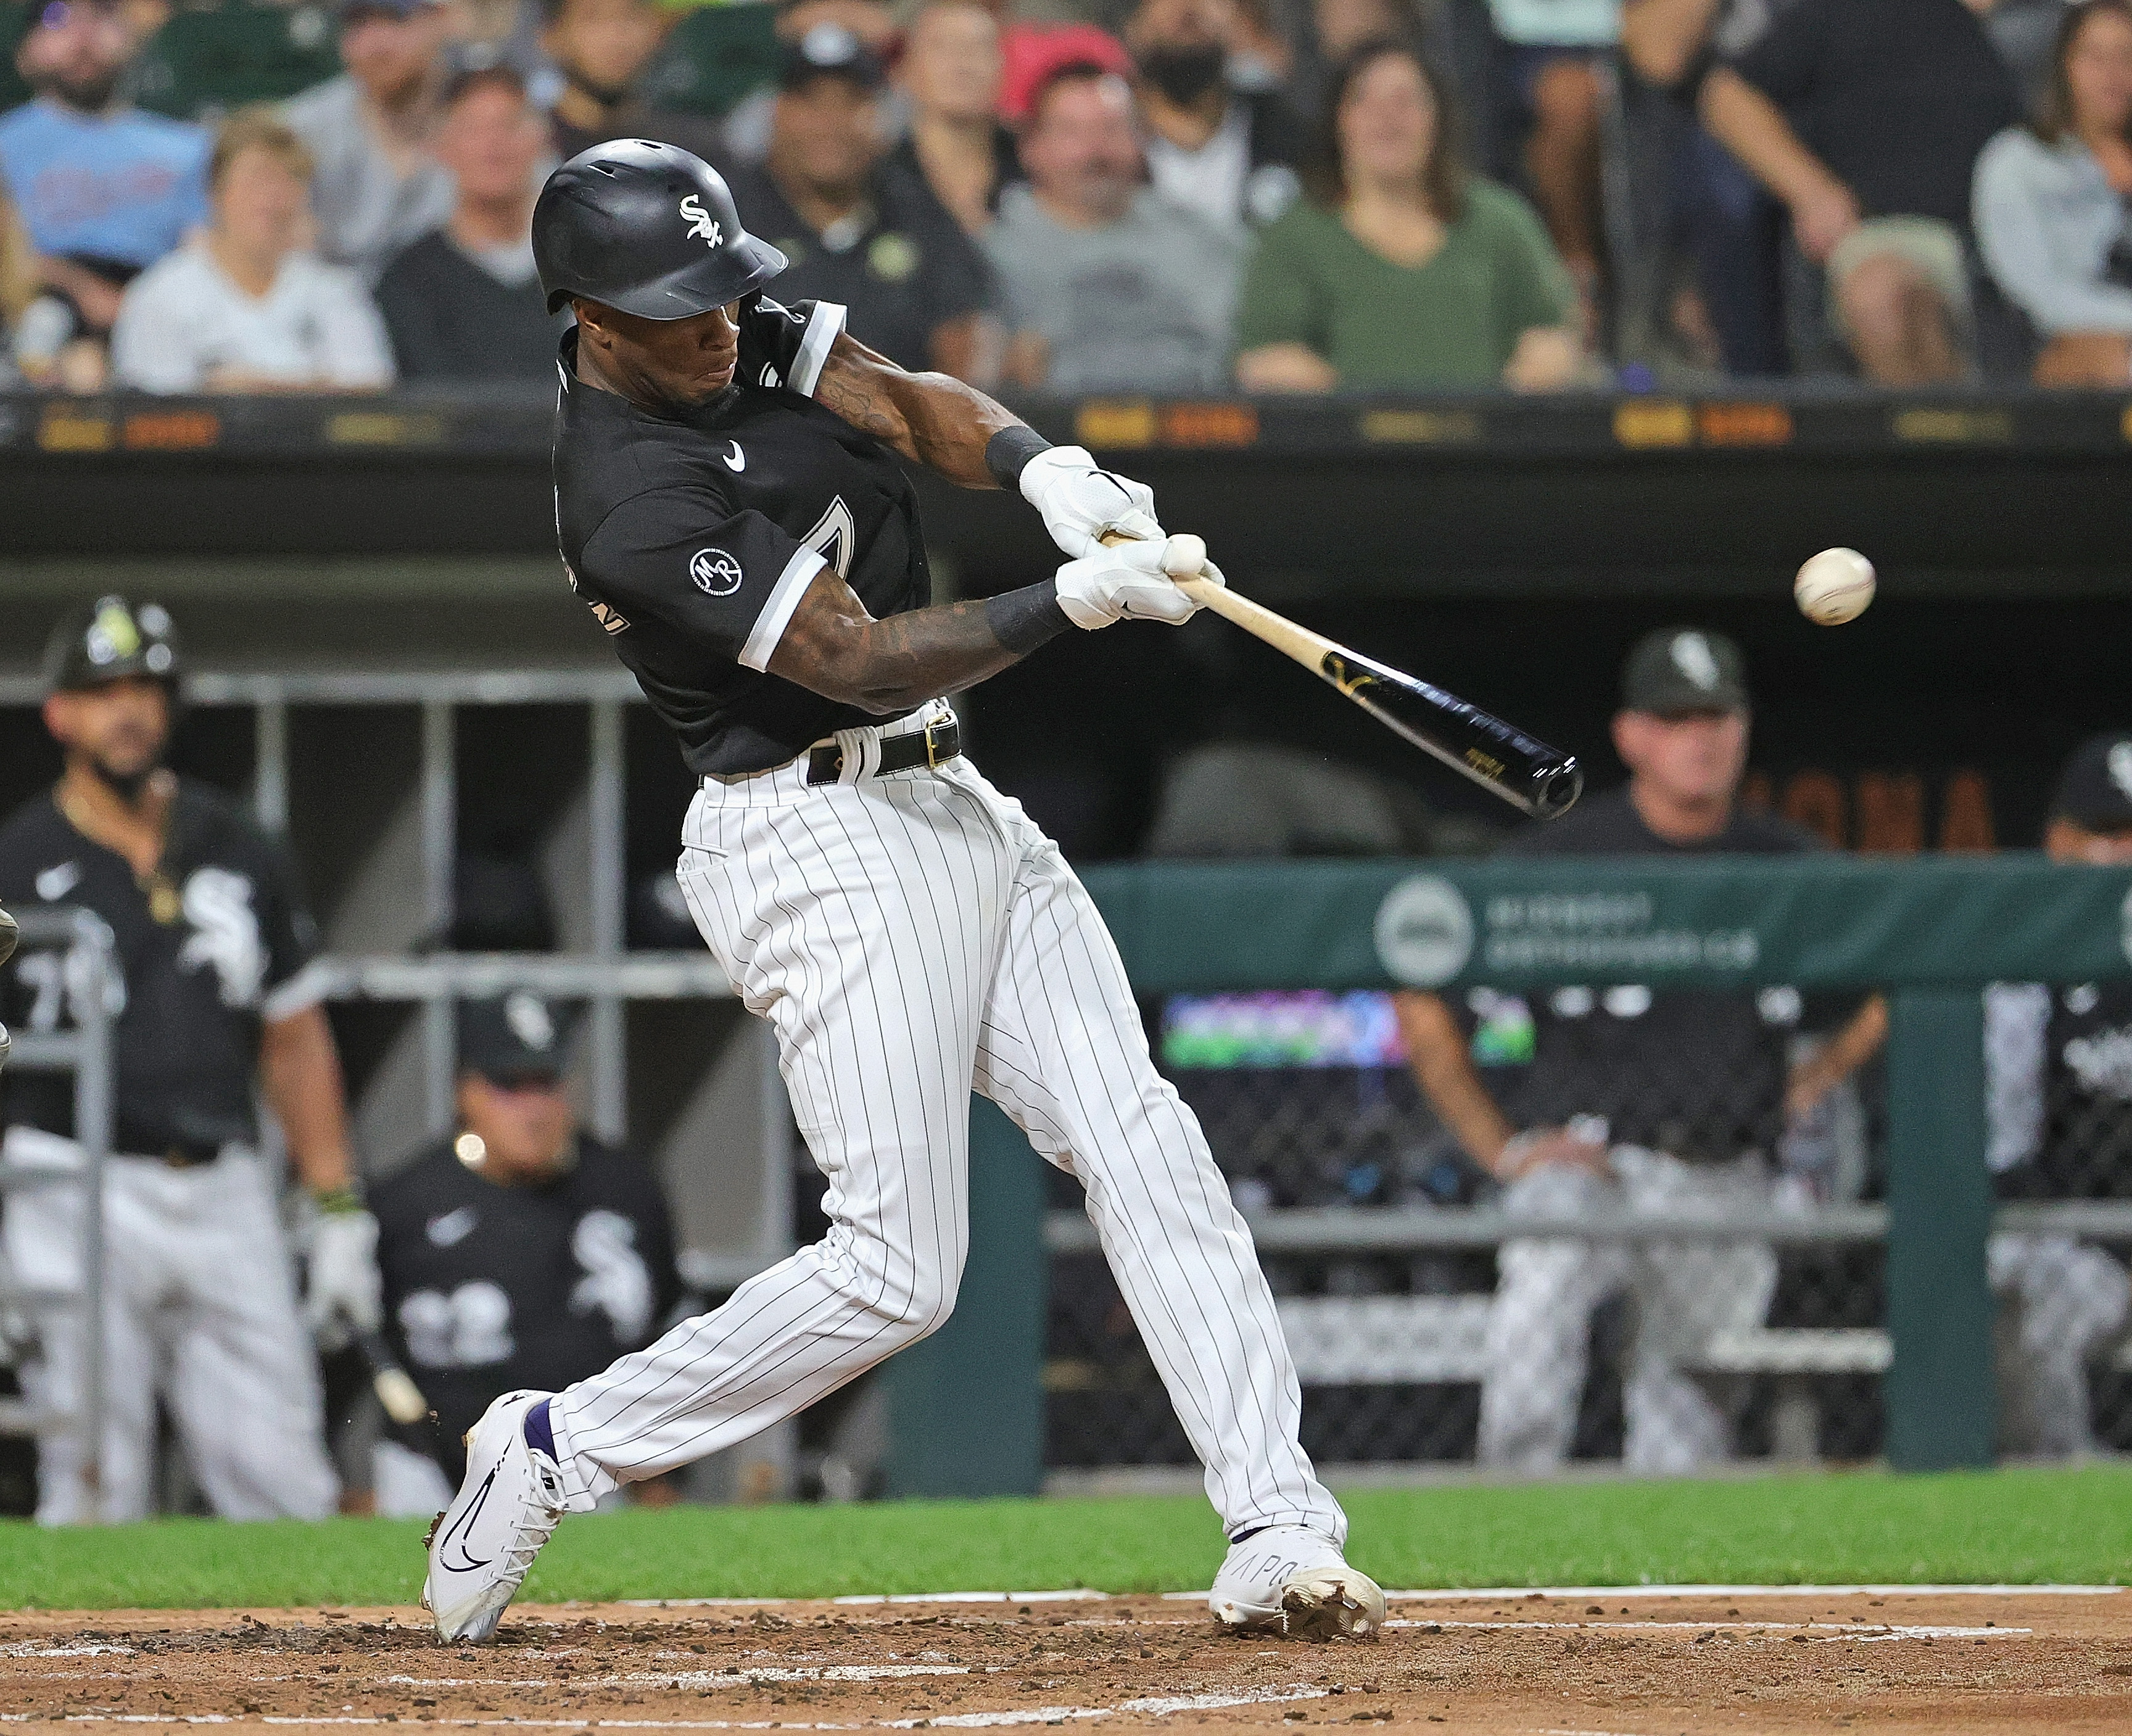 The White Sox' Tim Anderson is back at it.